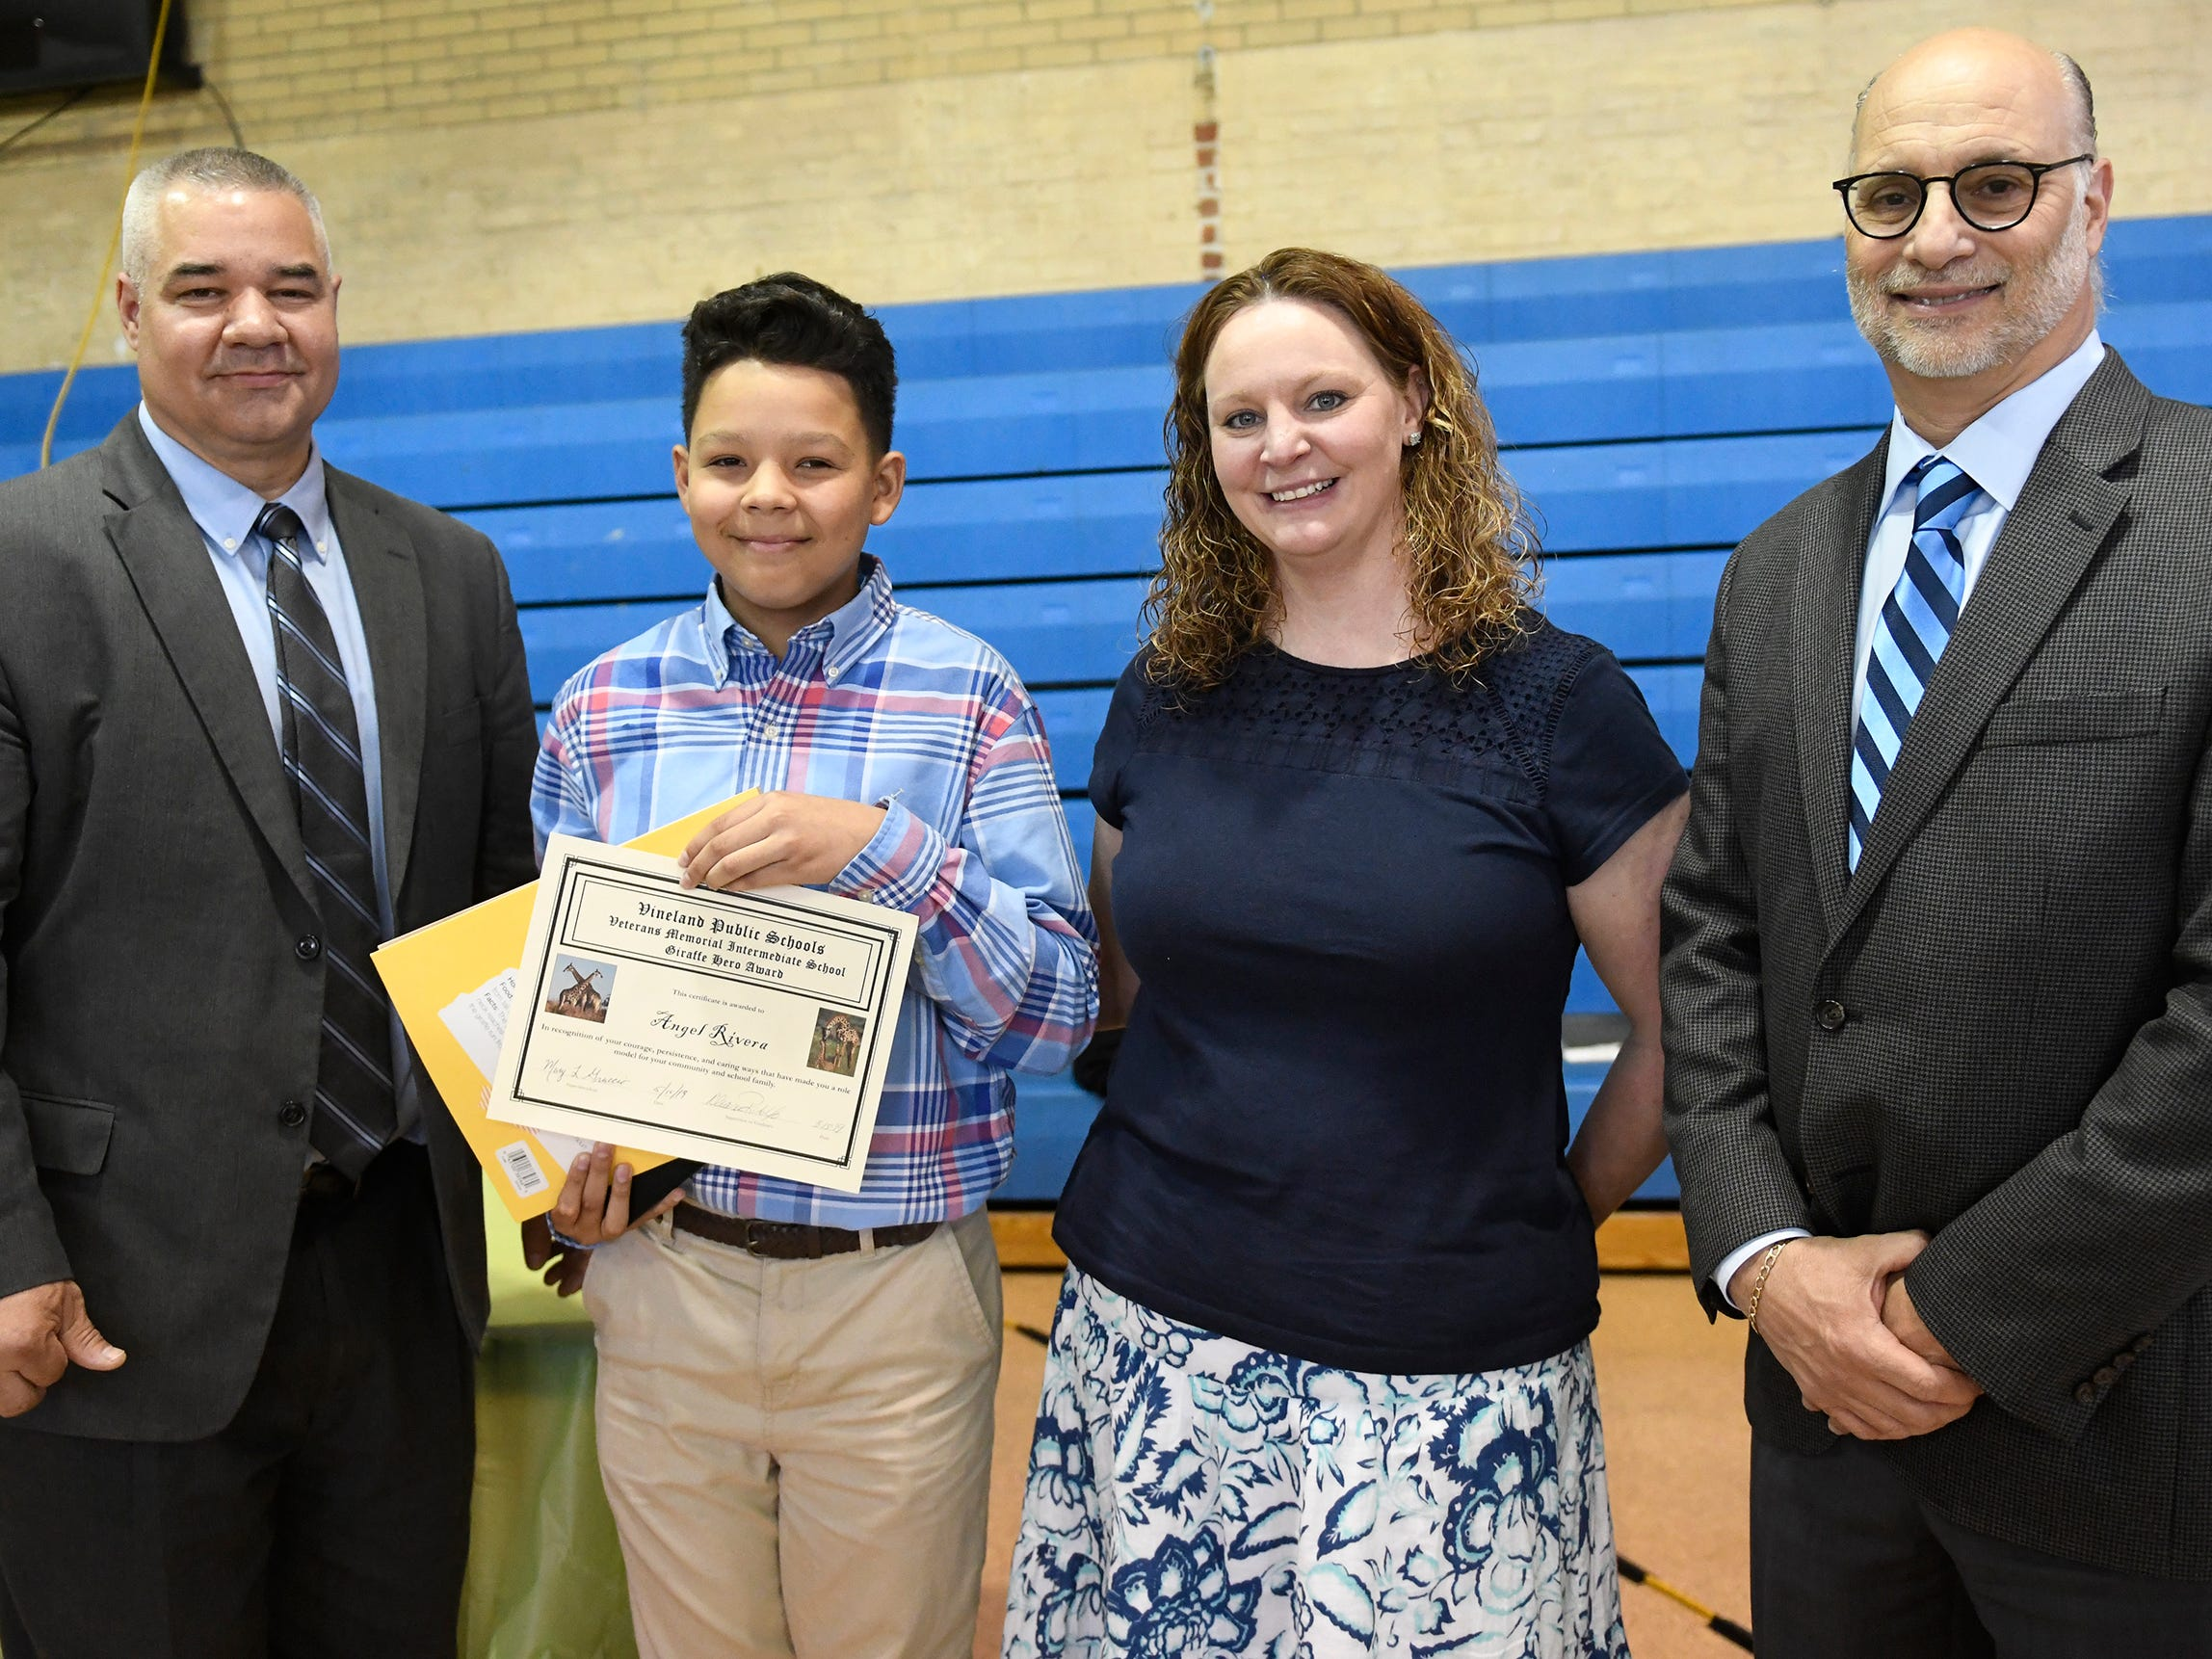 Veterans Memorial School student Angel Rivera was presented with a Giraffe Hero Award during a special ceremony on Wednesday, May 15, 2019.